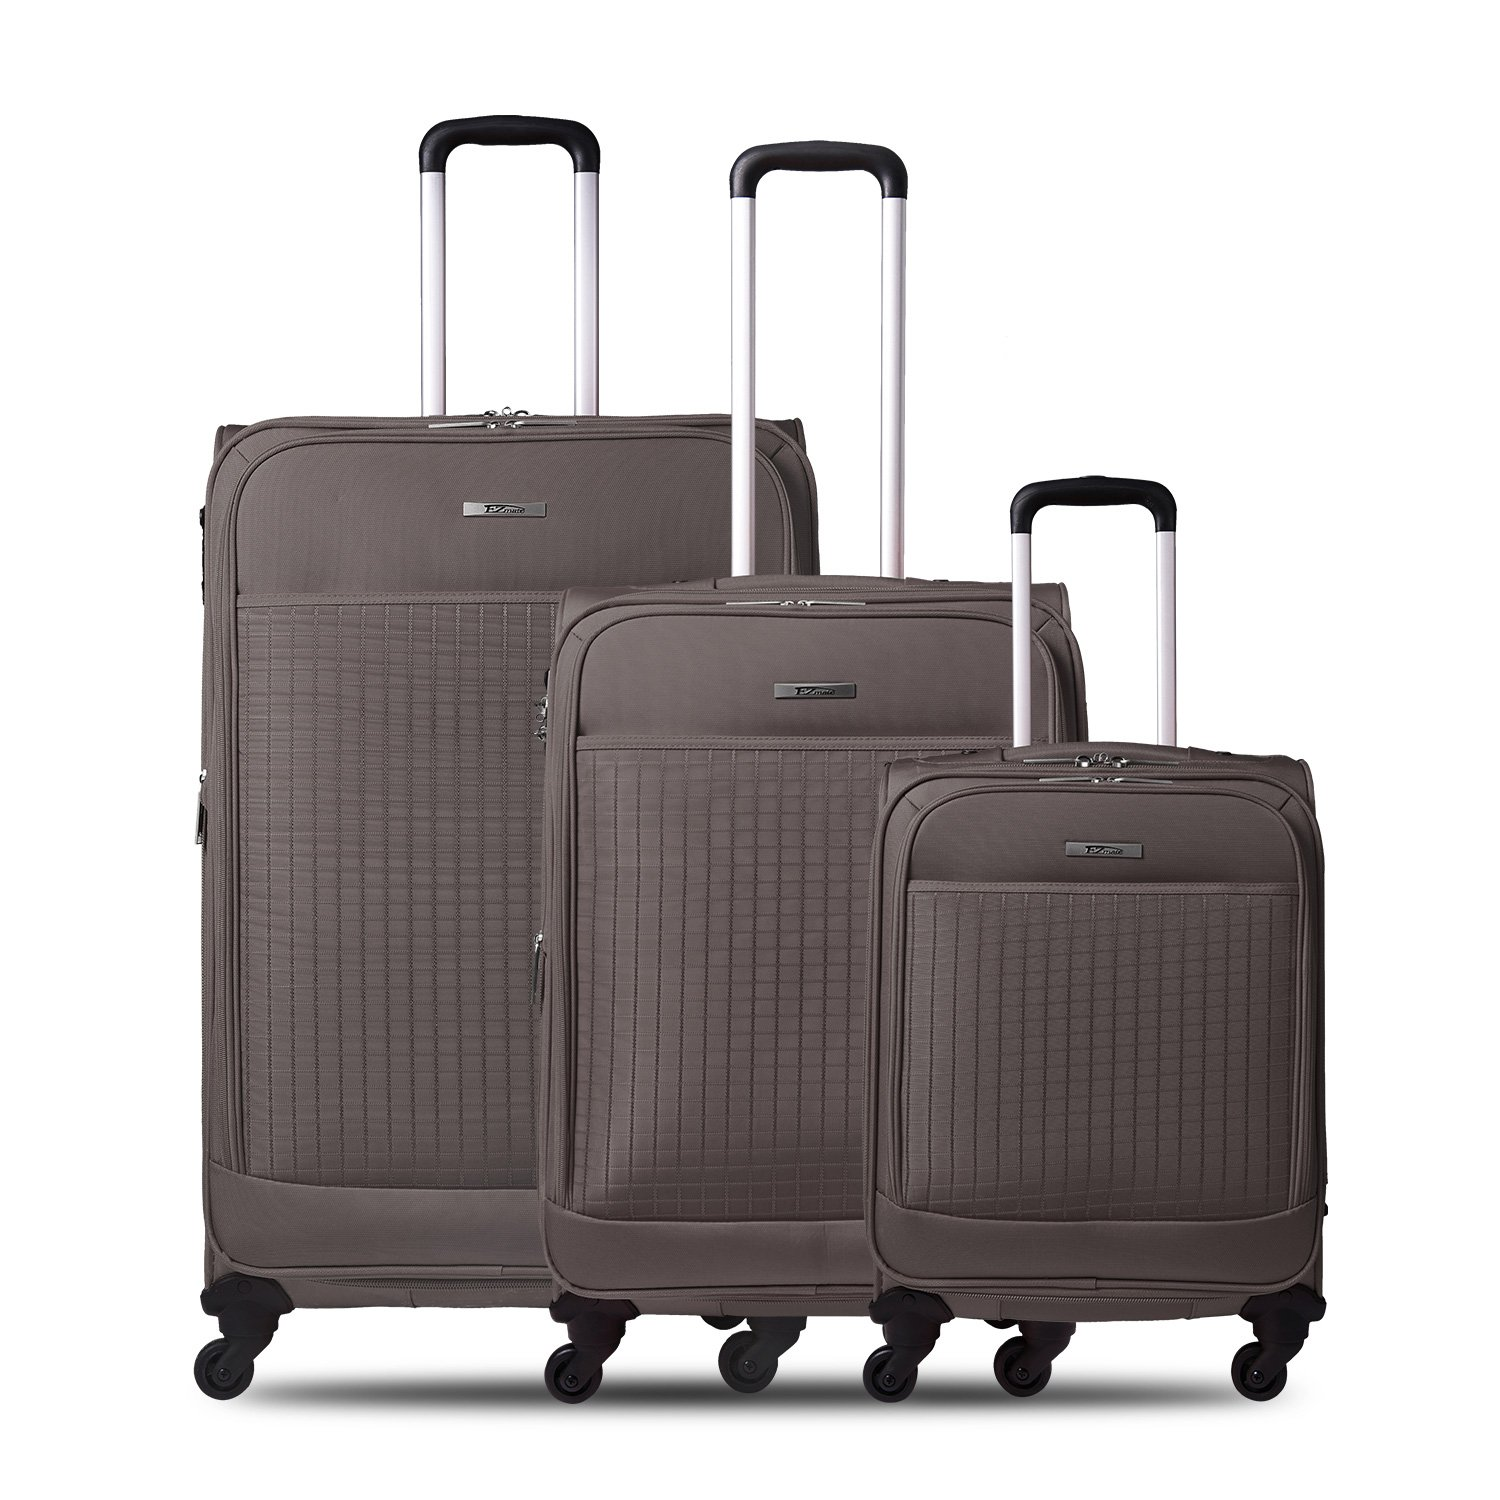 luggage Sets Spinner Wheels -For Business,Travel, Student,Men,Women, Heavy - Duty(20'', 24'',28'')